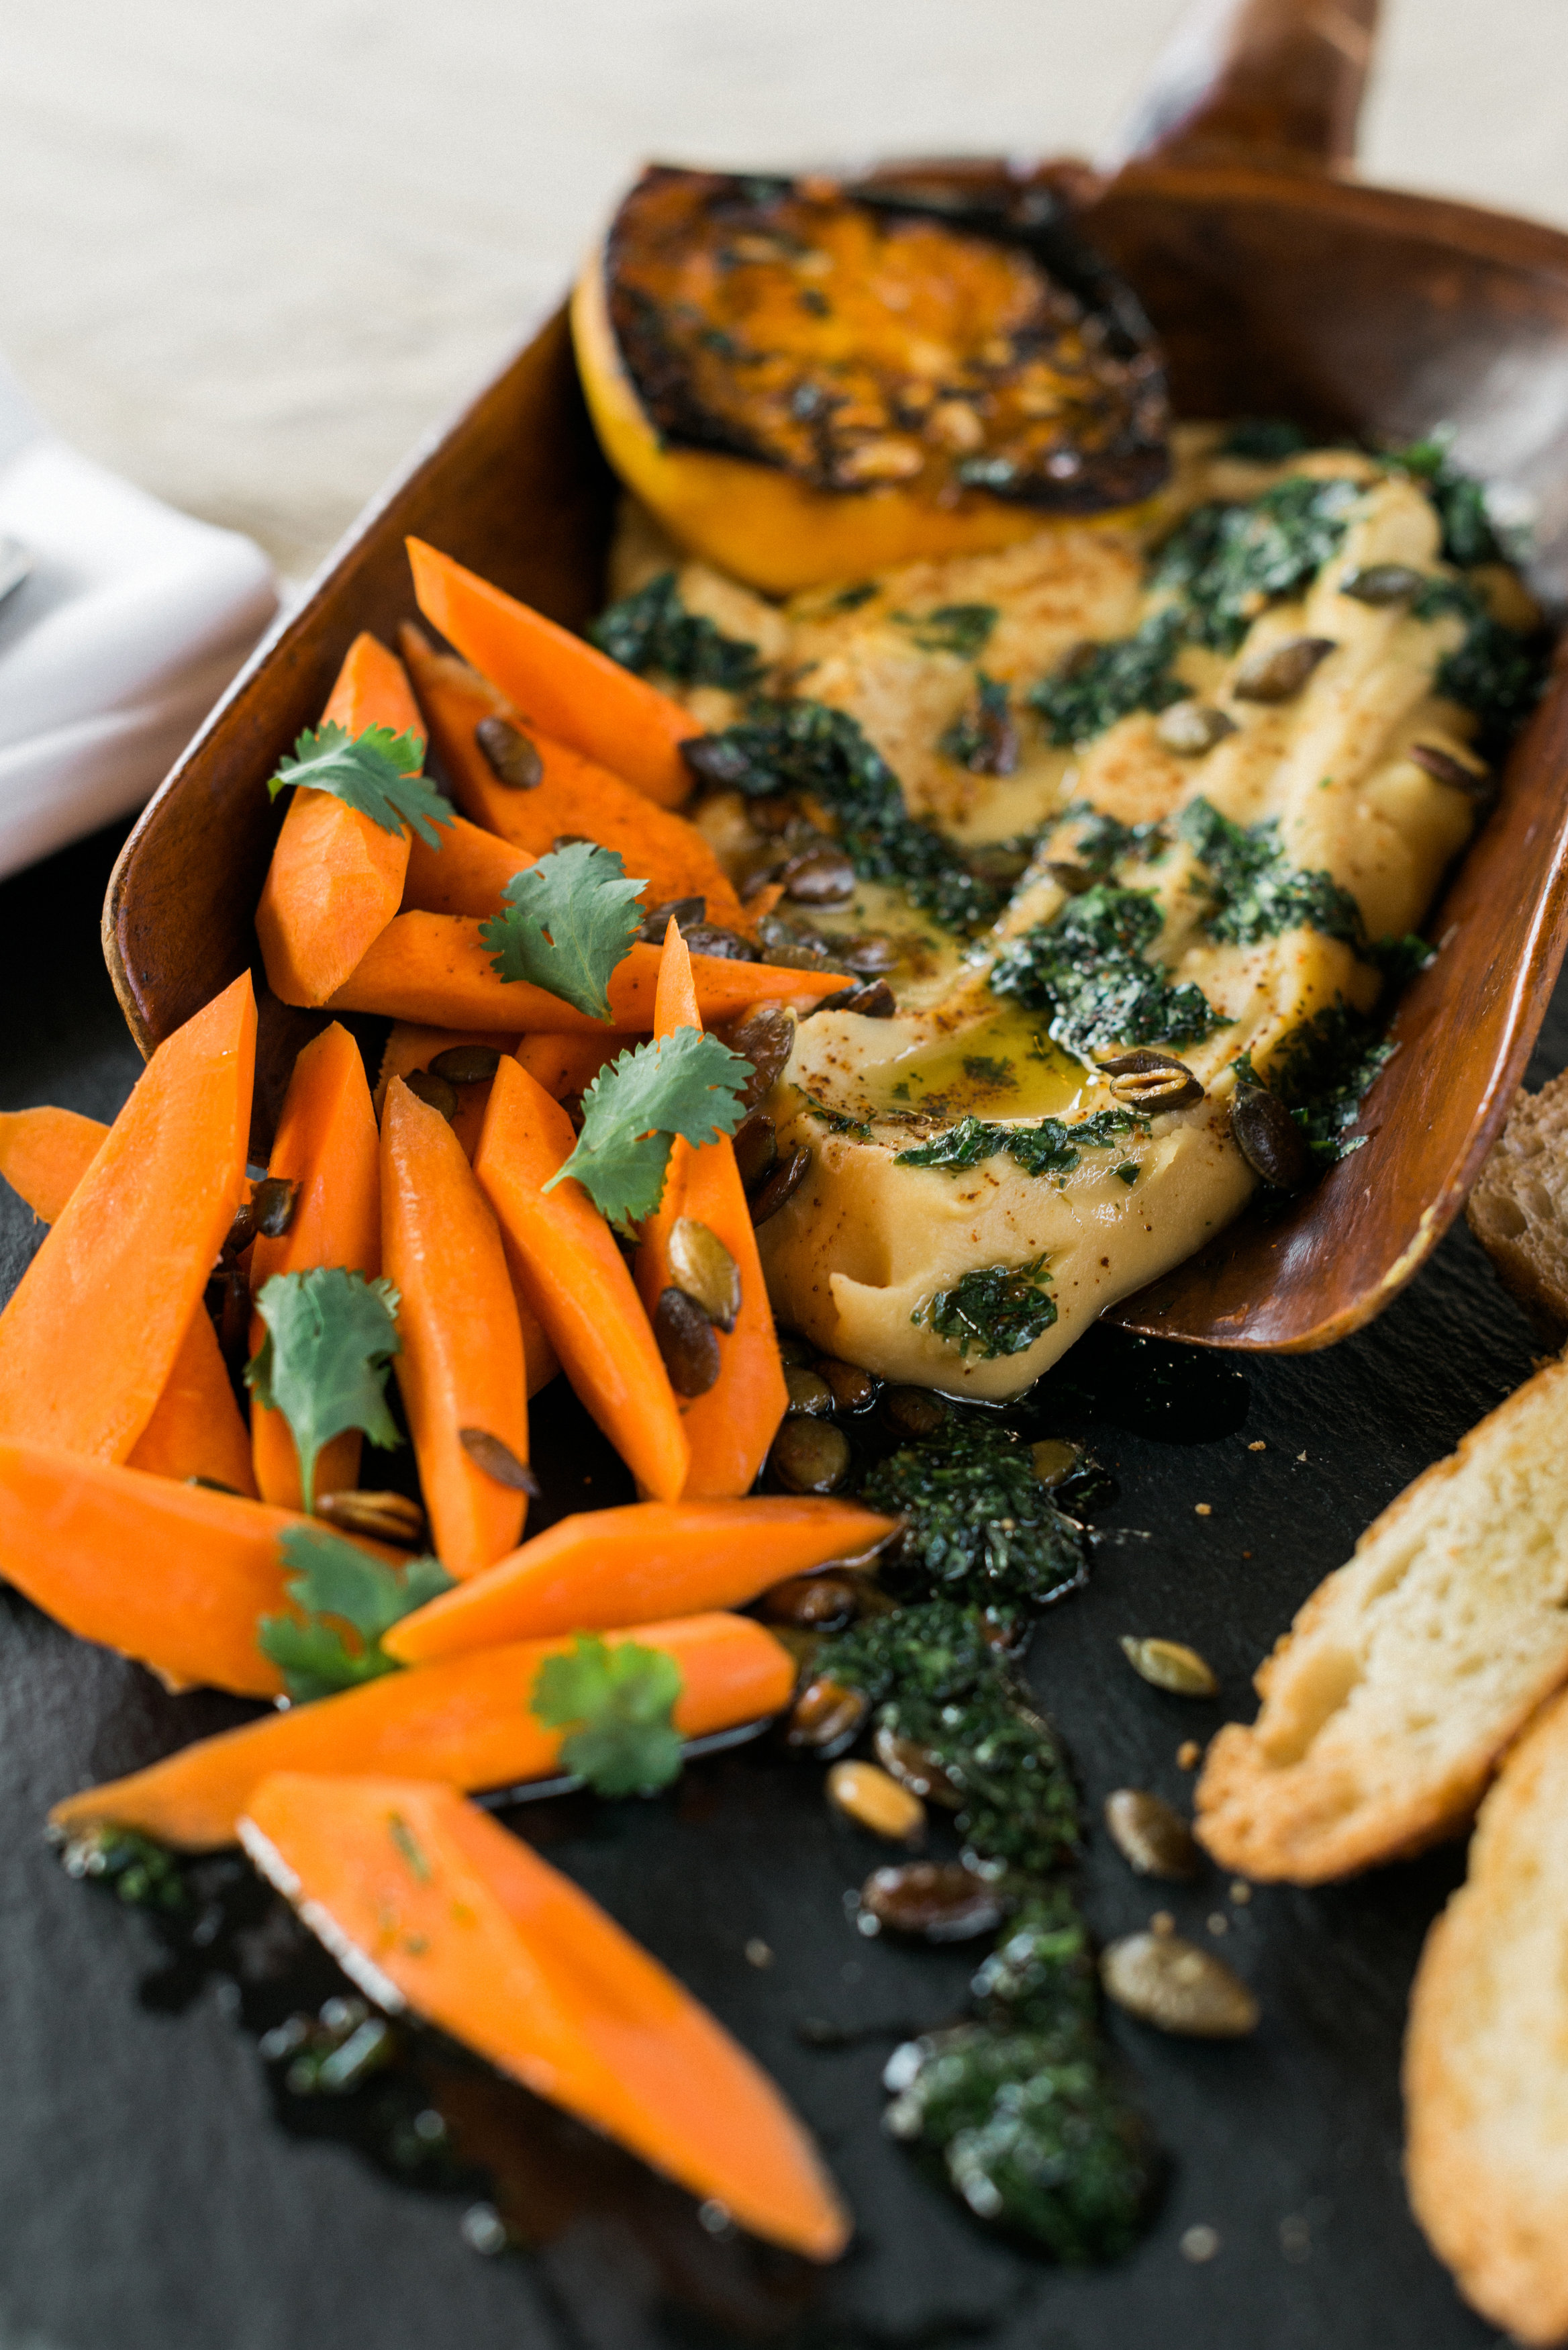 Homespun Atlanta Boutique Chef and Catering Services | Butternut Squash Hummus.jpg